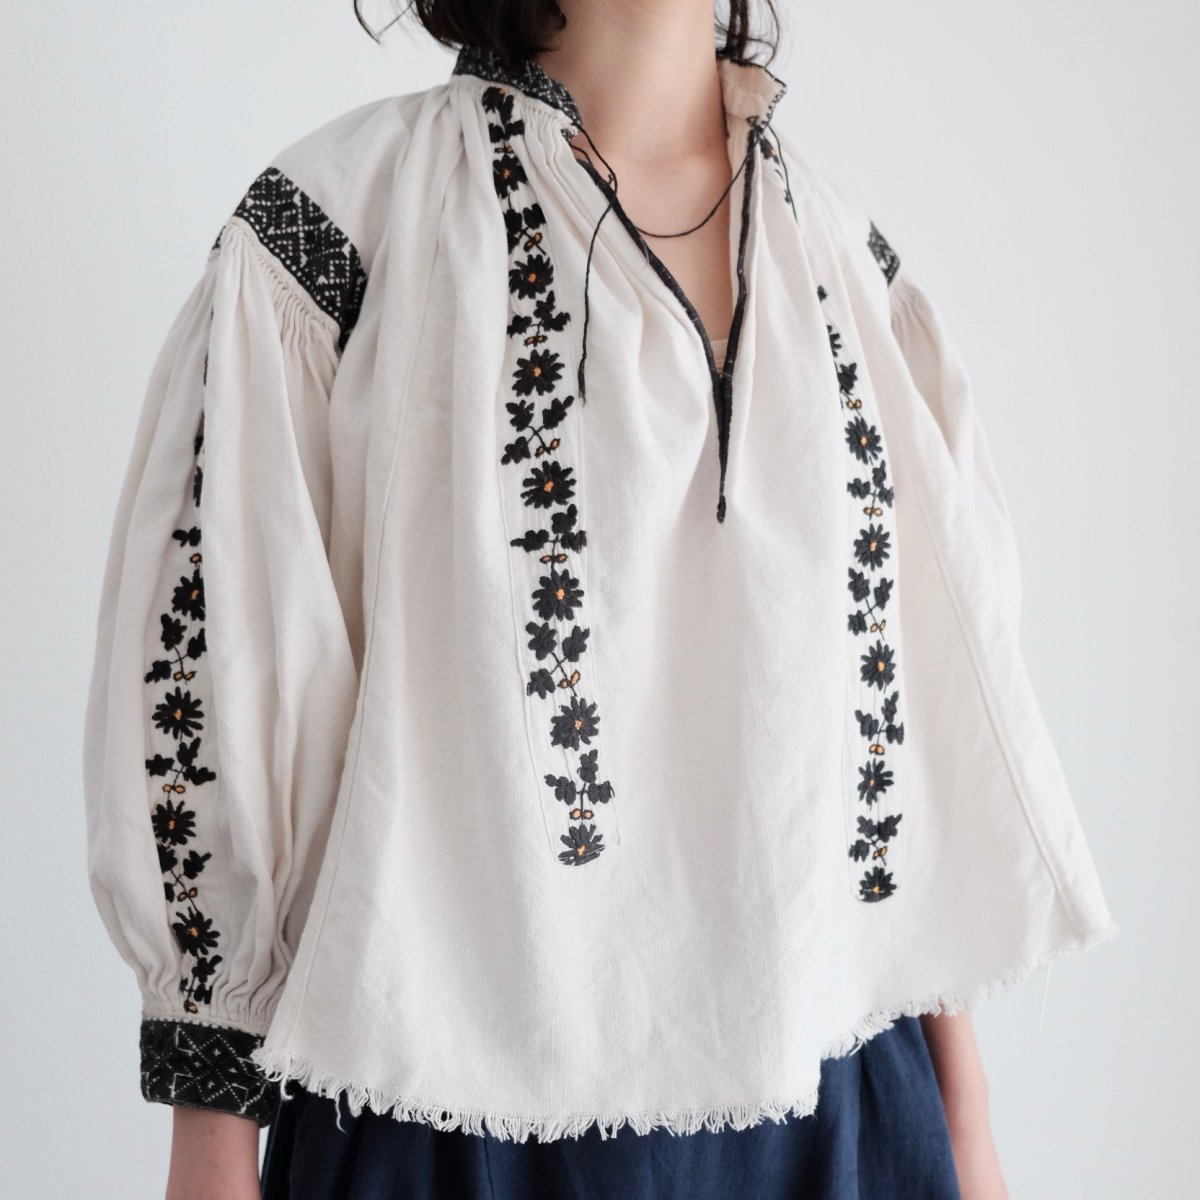 [VINTAGE] Romanian Black Daisy Embroidered Dress